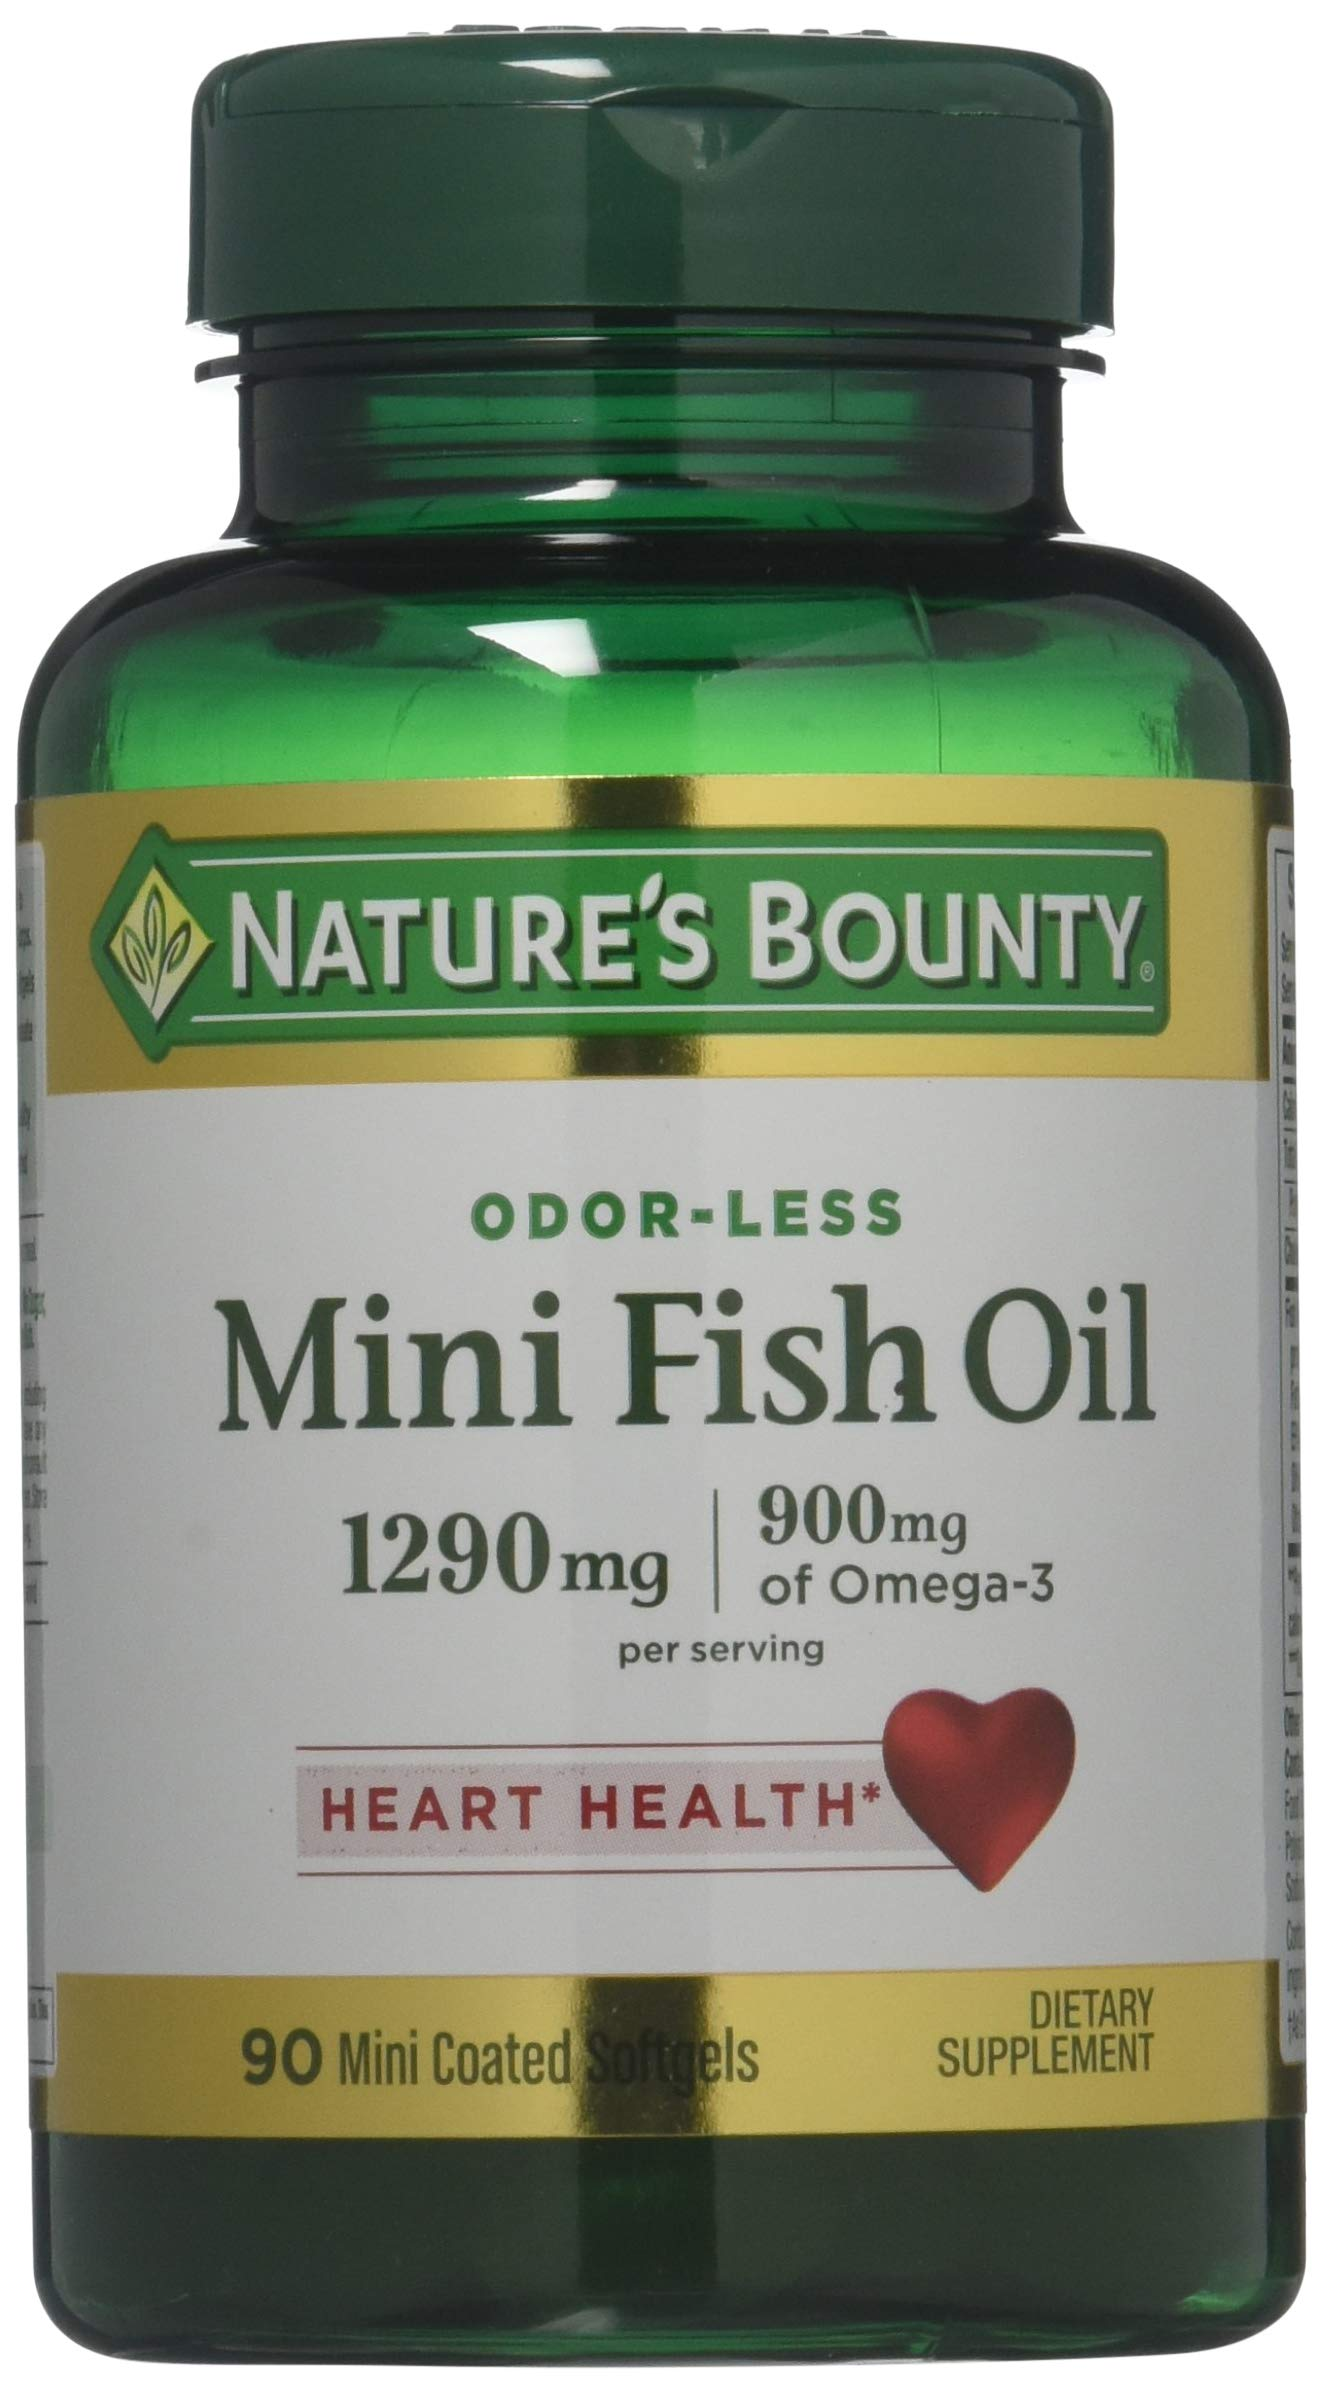 Nature's Bounty Fish Oil 1290 mg, 90 Mini Odorless Softgels by Nature's Bounty